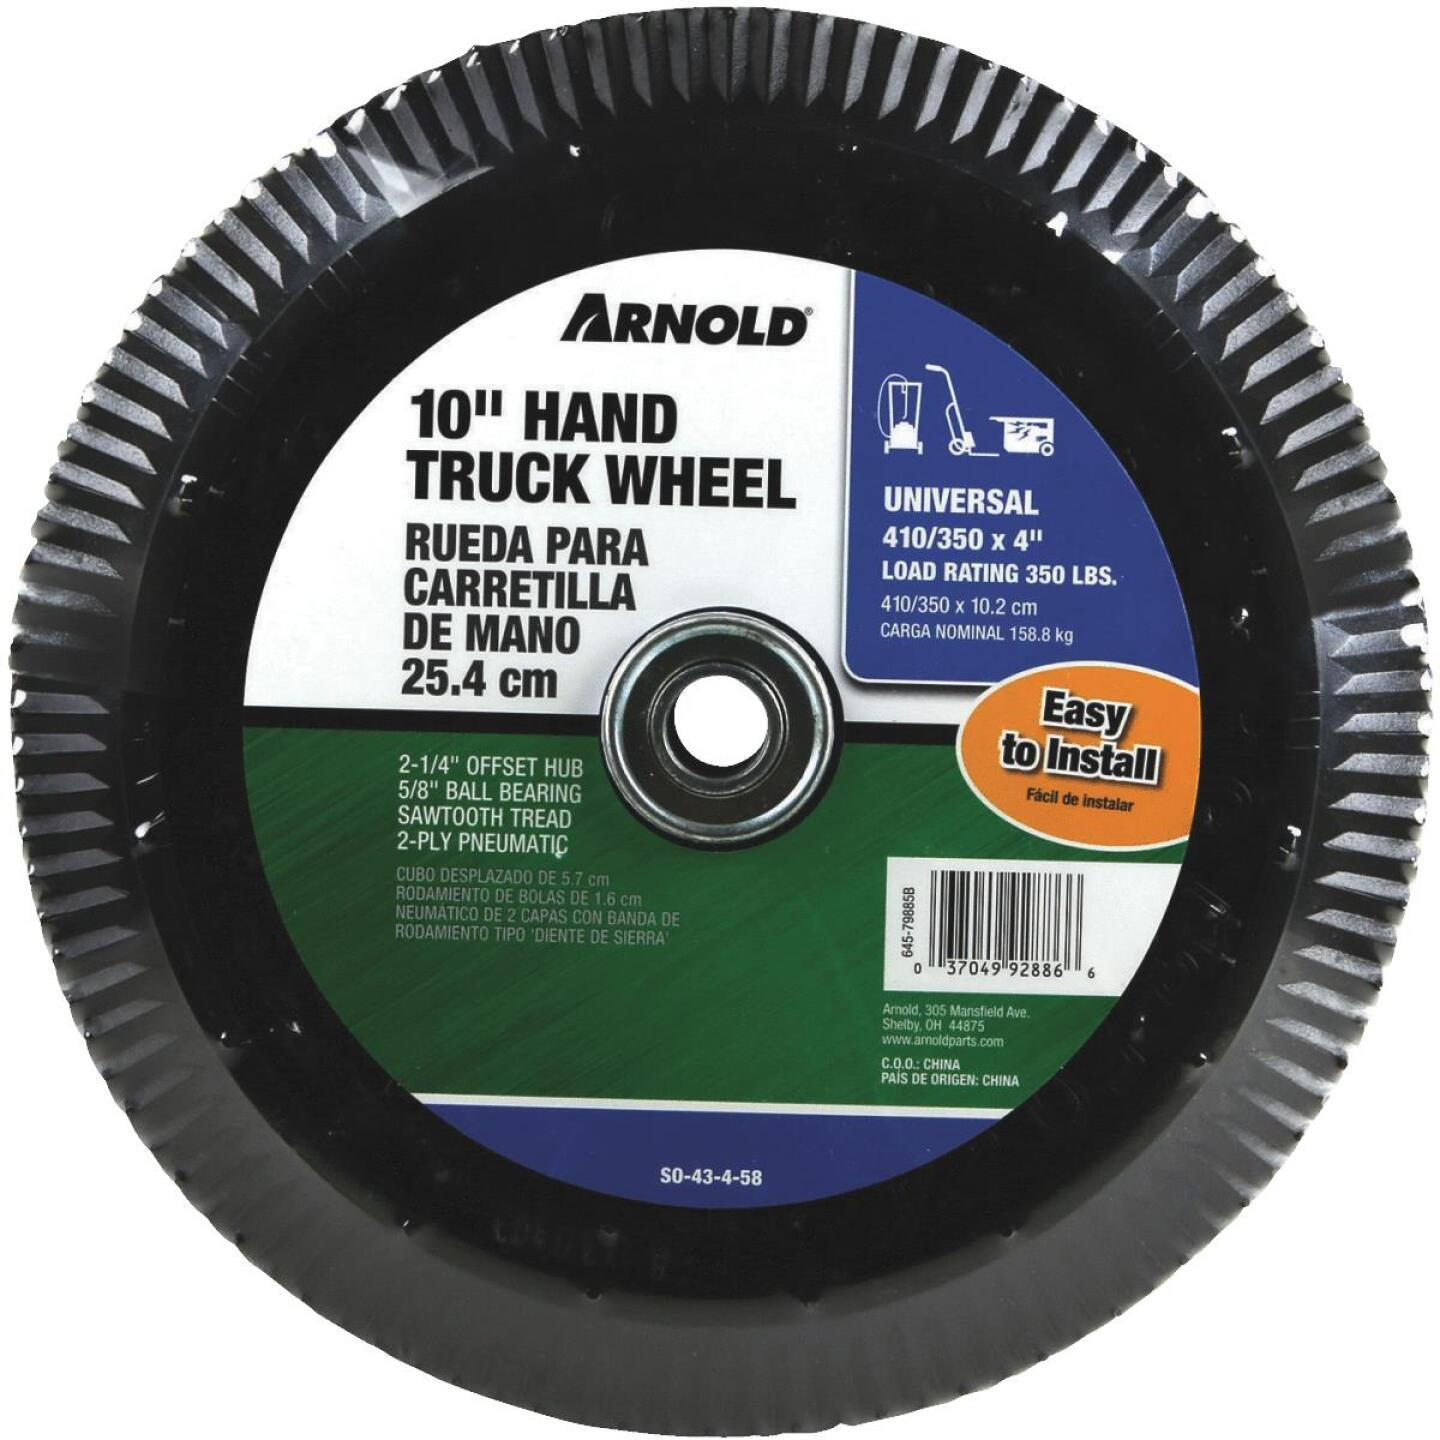 Arnold 410/350x4 Replacement Wheel Assembly Image 1